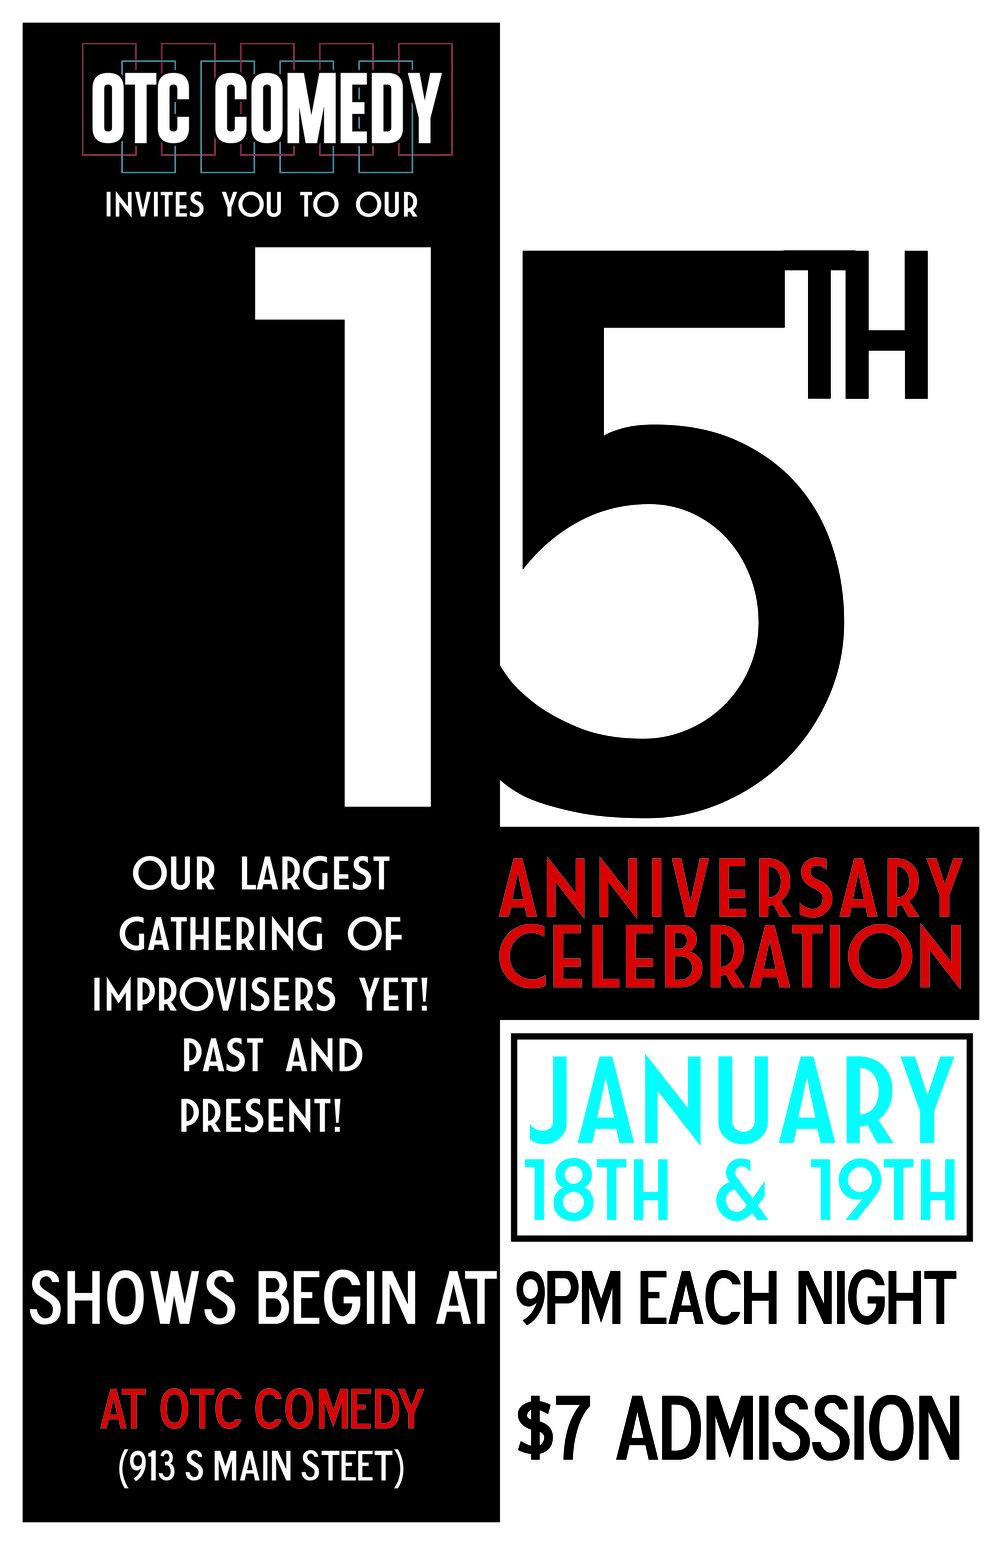 Celebrate 15 Years of Laughter! - OTC Comedy's Birthday is so big it can't be contained on one night!Join us January 18th and 19th at 9pm (doors open at 8:30pm) for our big birthday spectacular! Everyone has been invited back, and we have over 45 performers, including old favorites like the incomparable Tilt, Captain Typhoon Tiffani, Kristen Henley, and Adam John Daly; current goofballs like Casey Durbin, Ben Cozzens, Cooper Wilt, and Gus Johnson; and of course the founders reunited: TJ, Wendy, Dave, and Mary! They, and many more, will be storming the stage! Don't miss the fun, the hilarity, and the emotion! It'll be a night to remember!